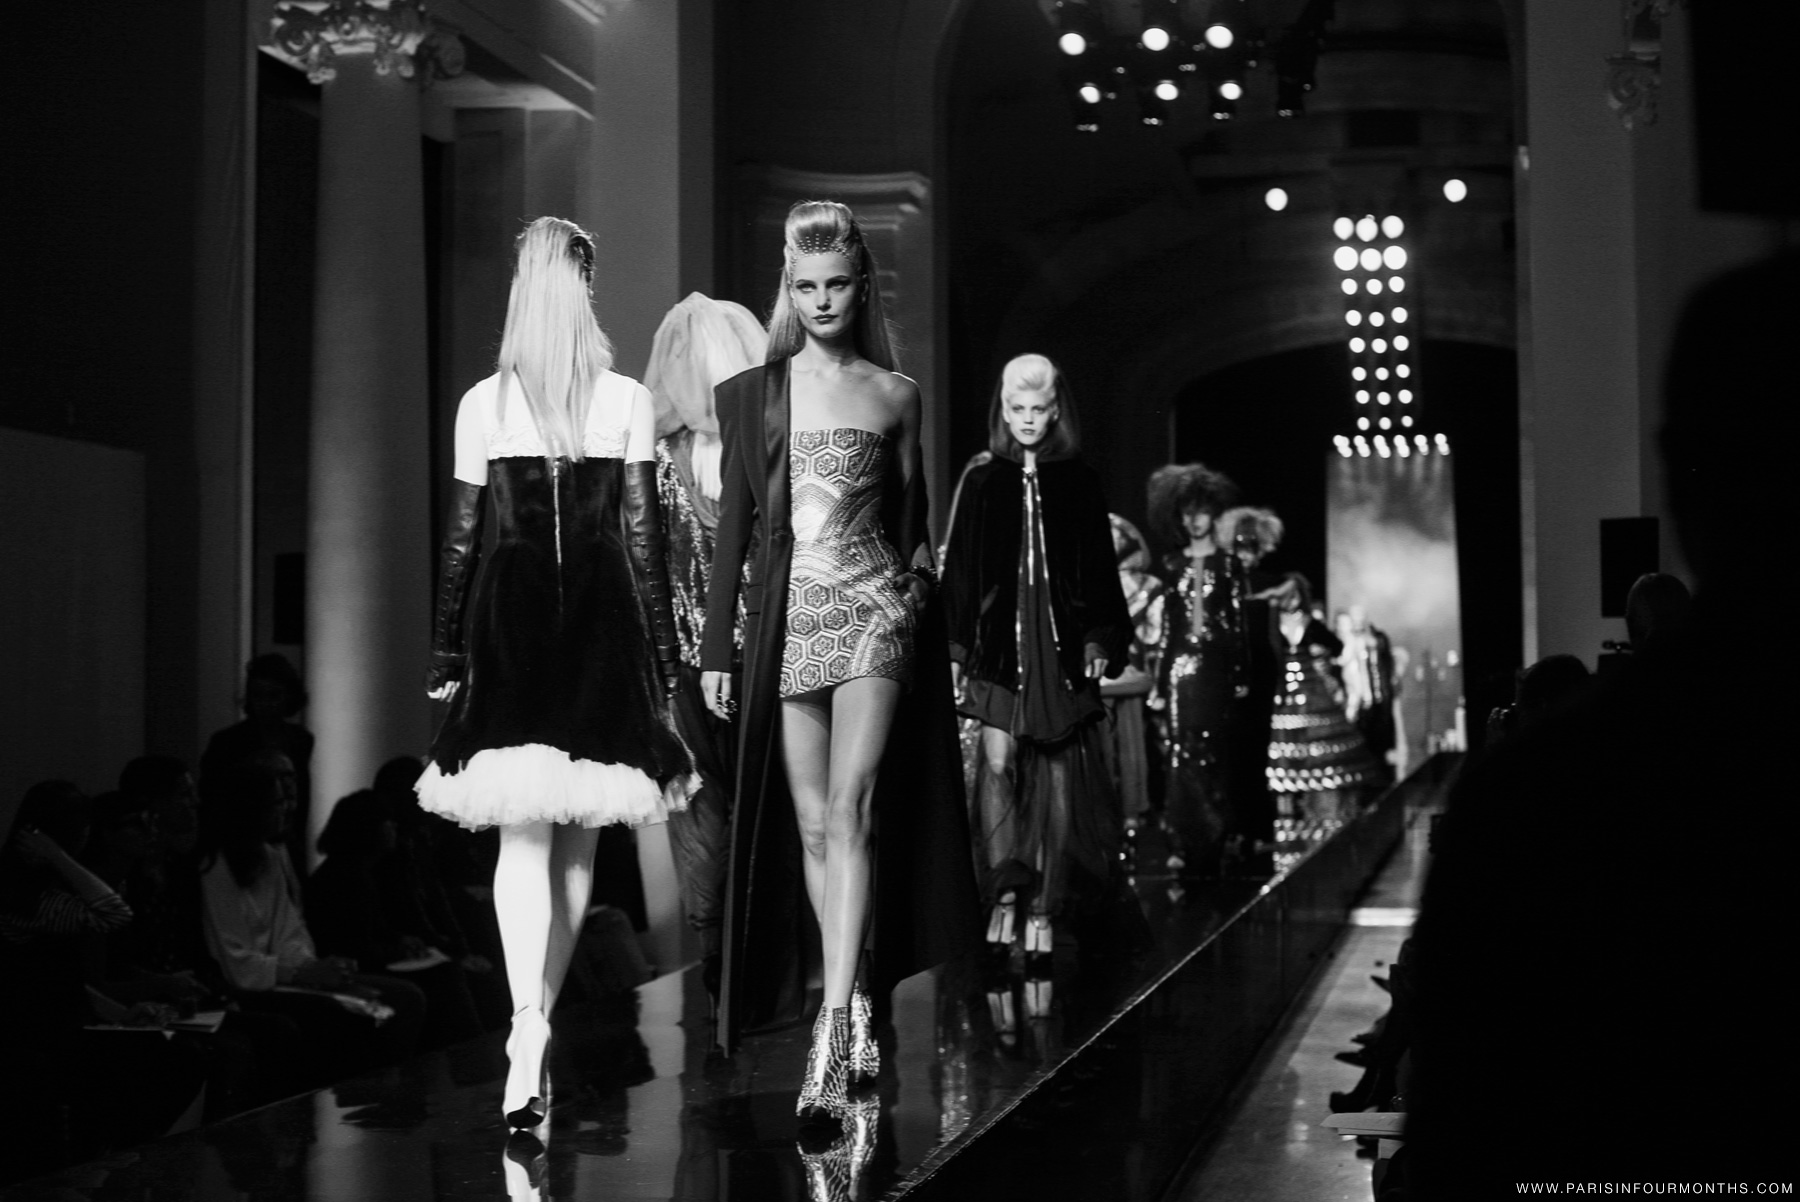 Jean Paul GaultiJean Paul Gaultier haute couture show by Carin Olsson (Paris in Four Months)er Haute Couture Show